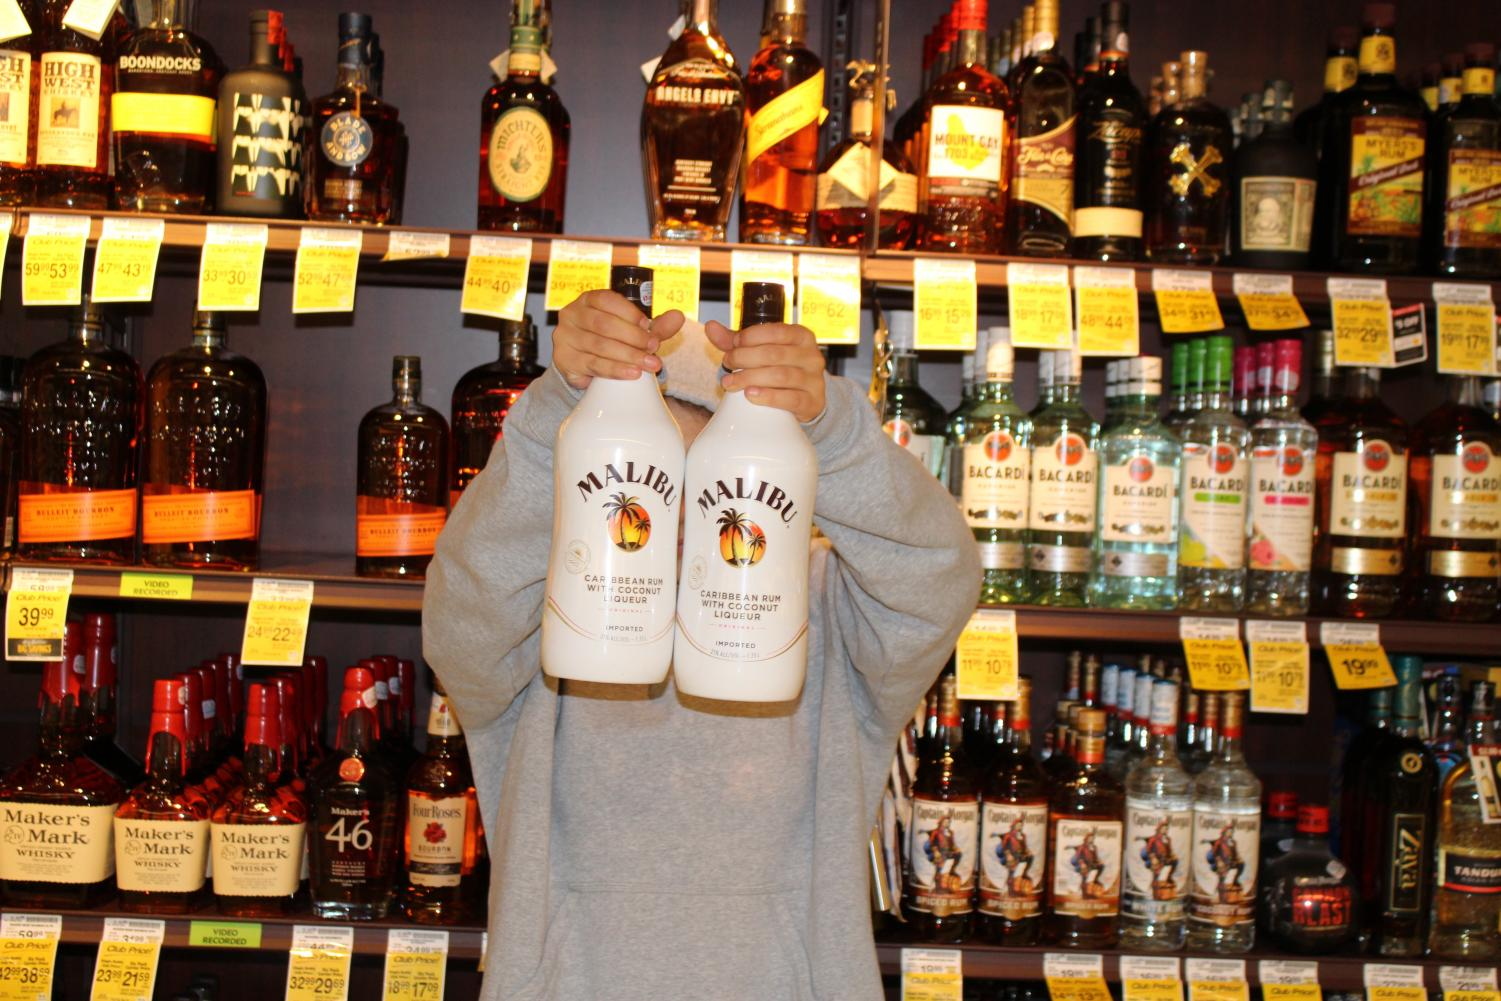 Alcohol is one of the most commonly shoplifted items.